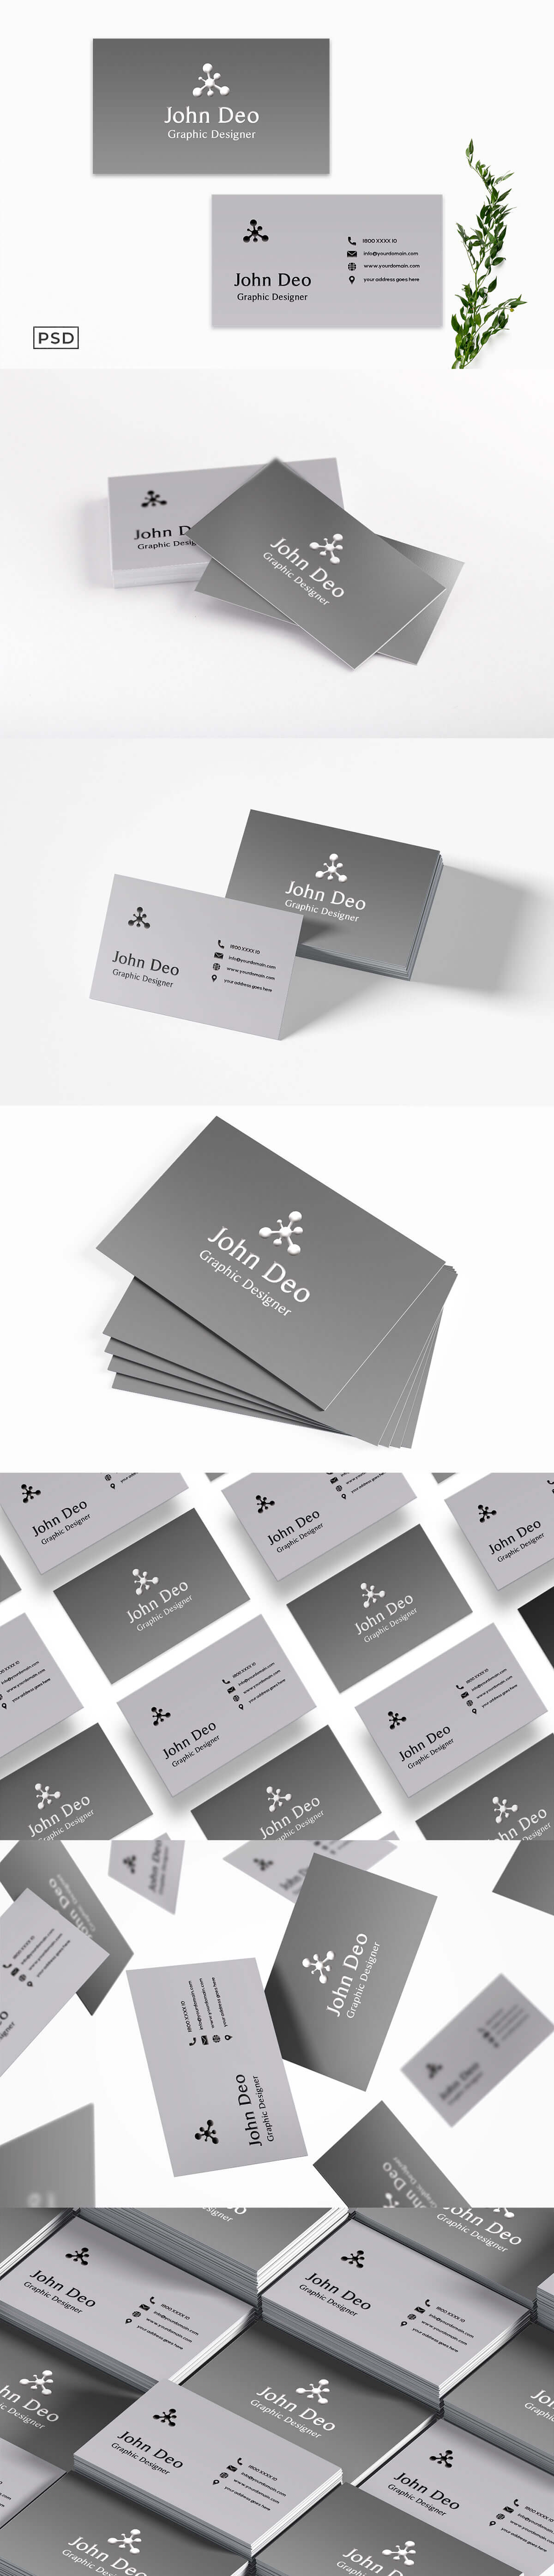 Free Minimal Gray Business Card Template